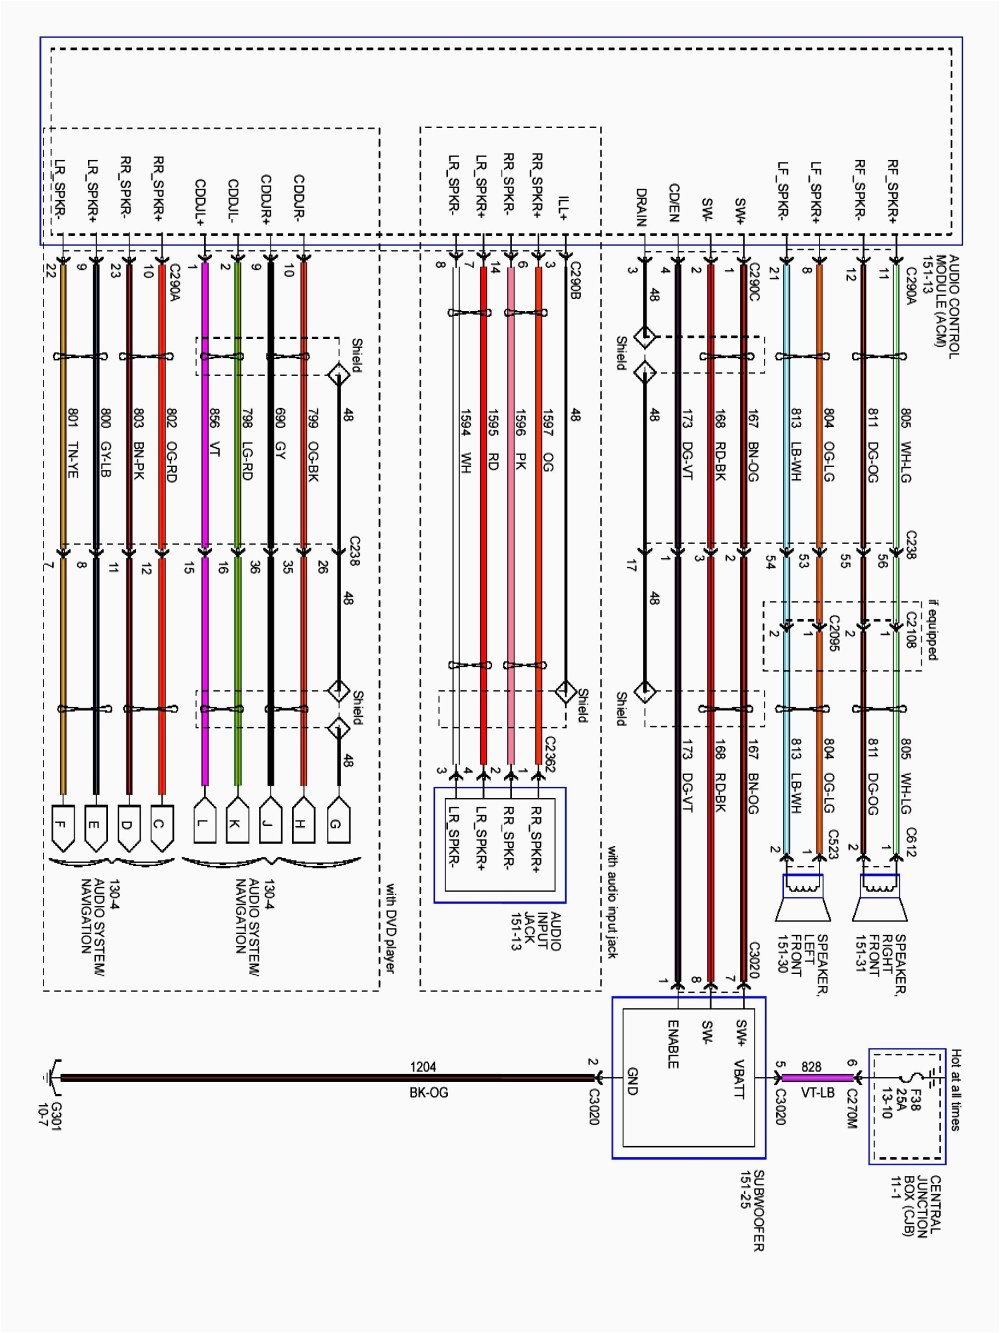 medium resolution of ford f 150 trailer wiring harness diagram wiring diagram mega2010 ford f 150 trailer wiring harness